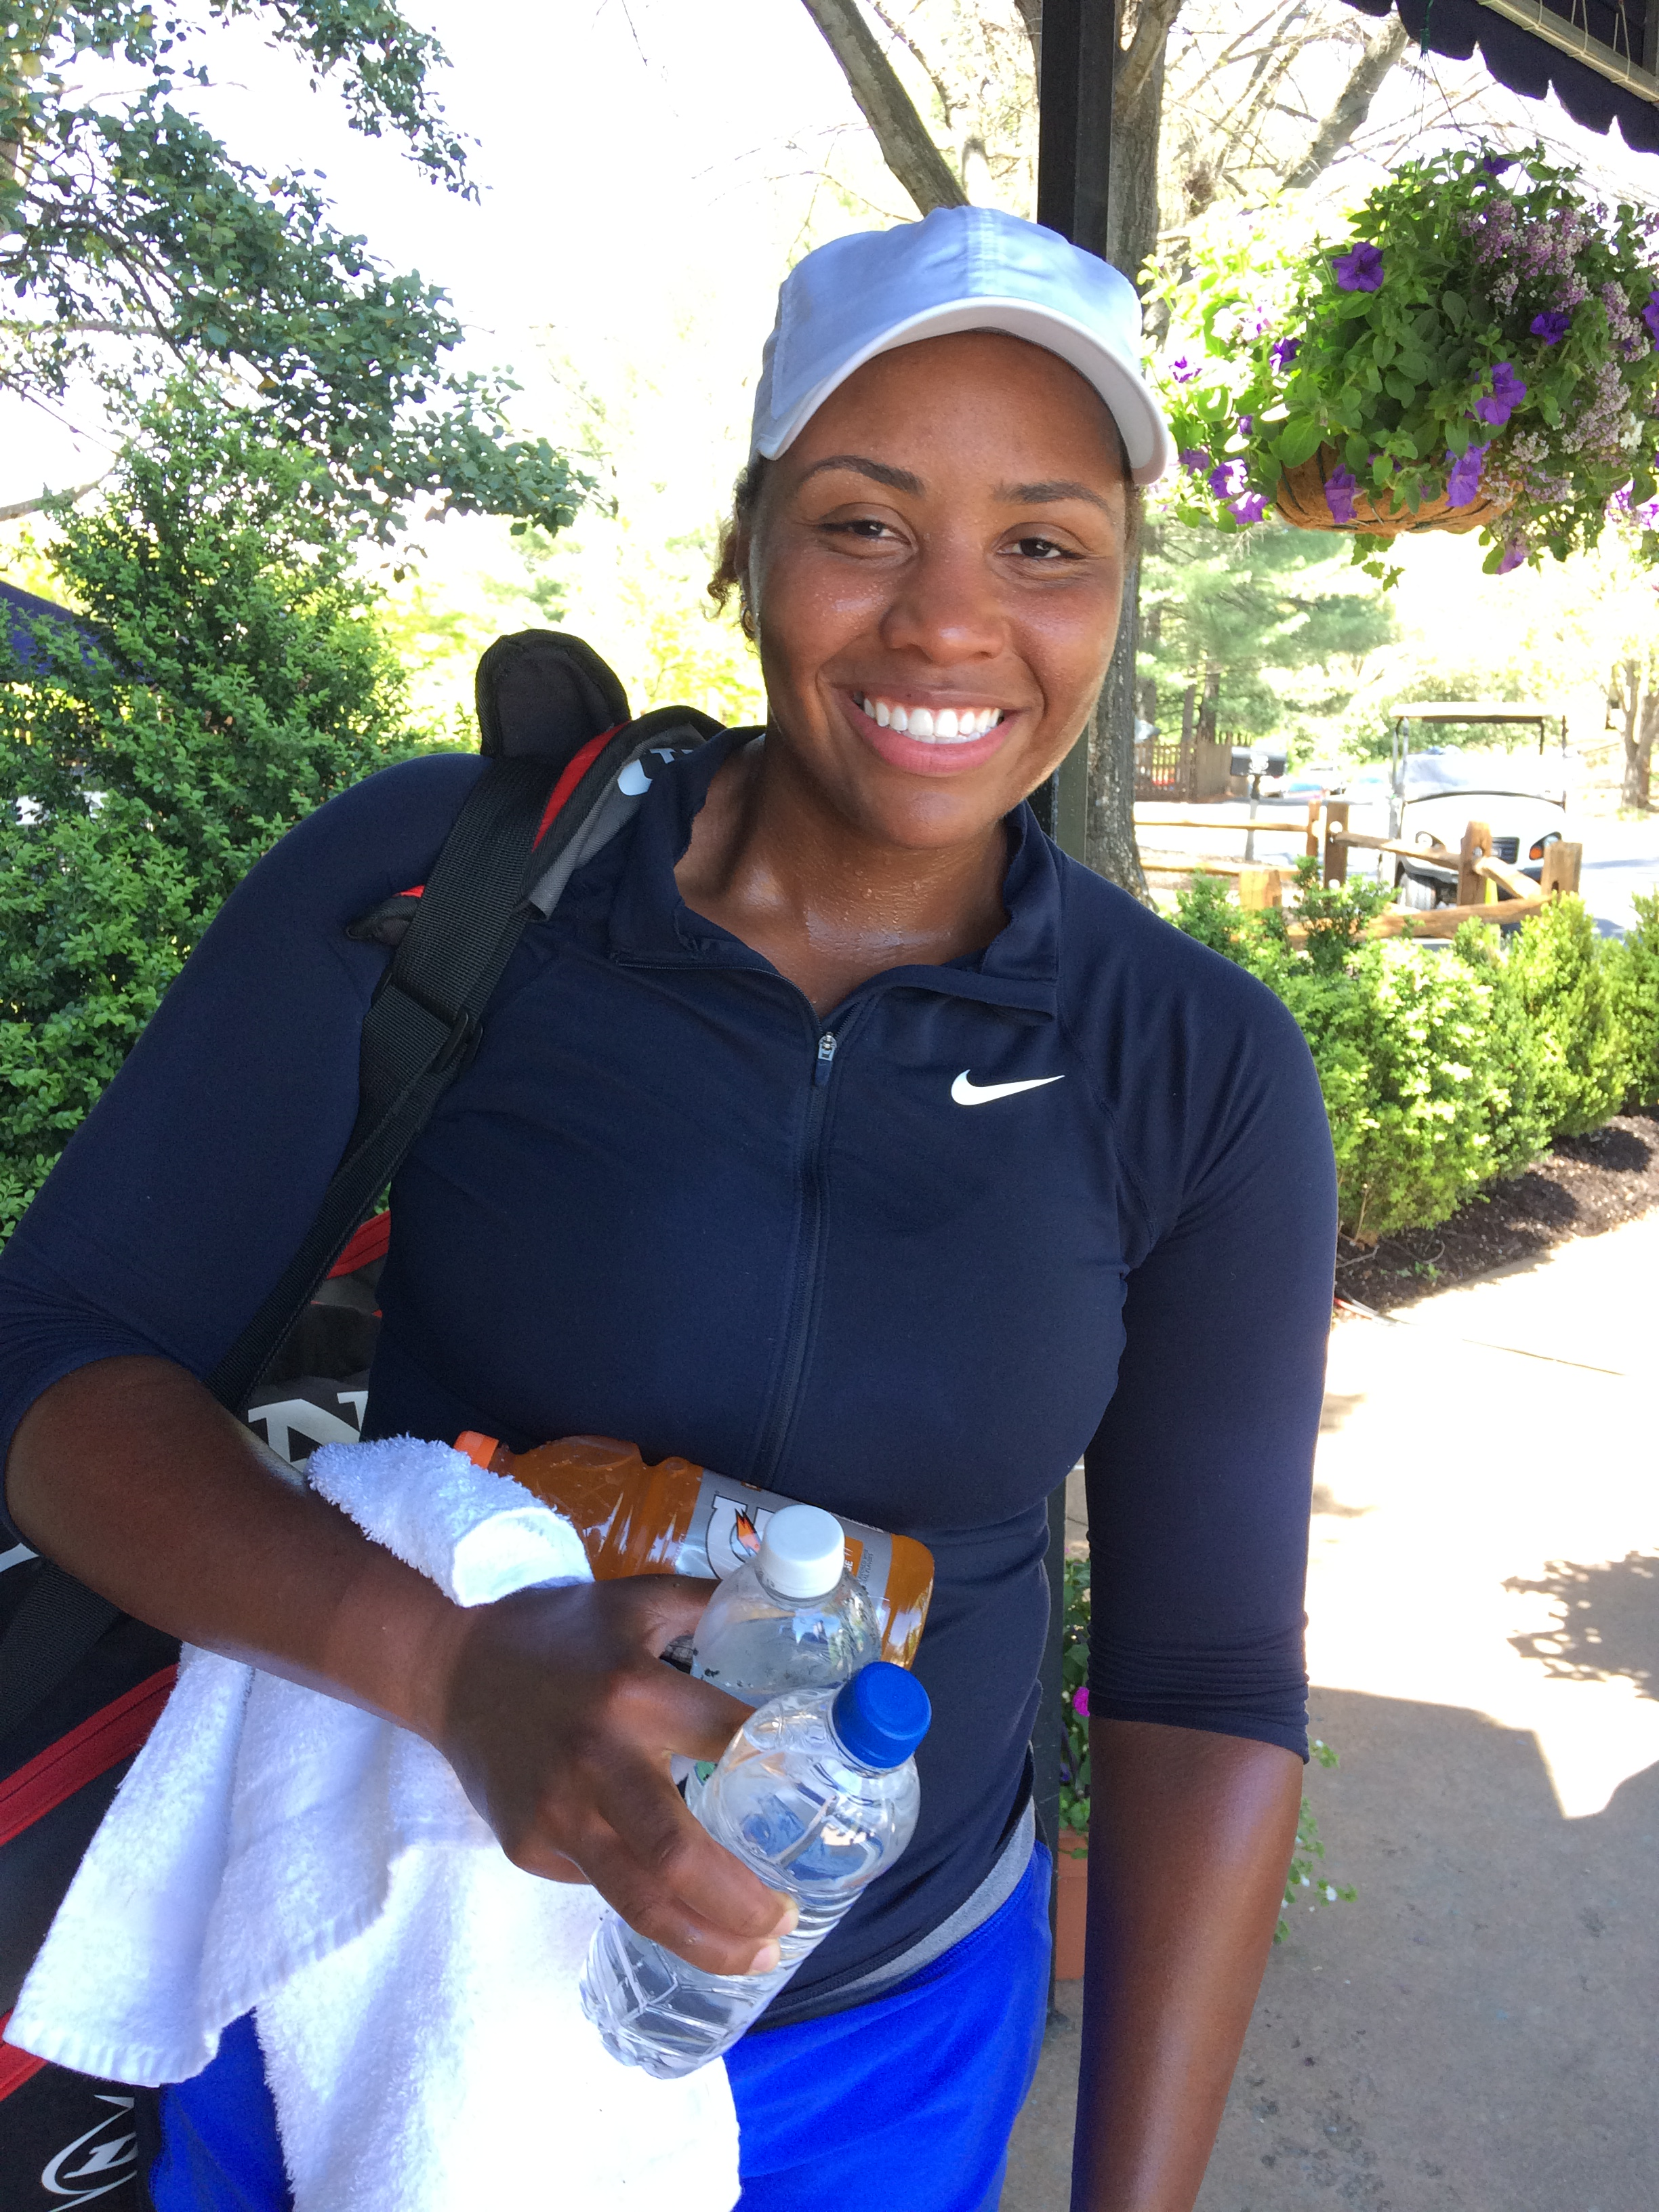 Taylor Townsend, 2018 Boyd Tinsley Women's Clay Court Classic